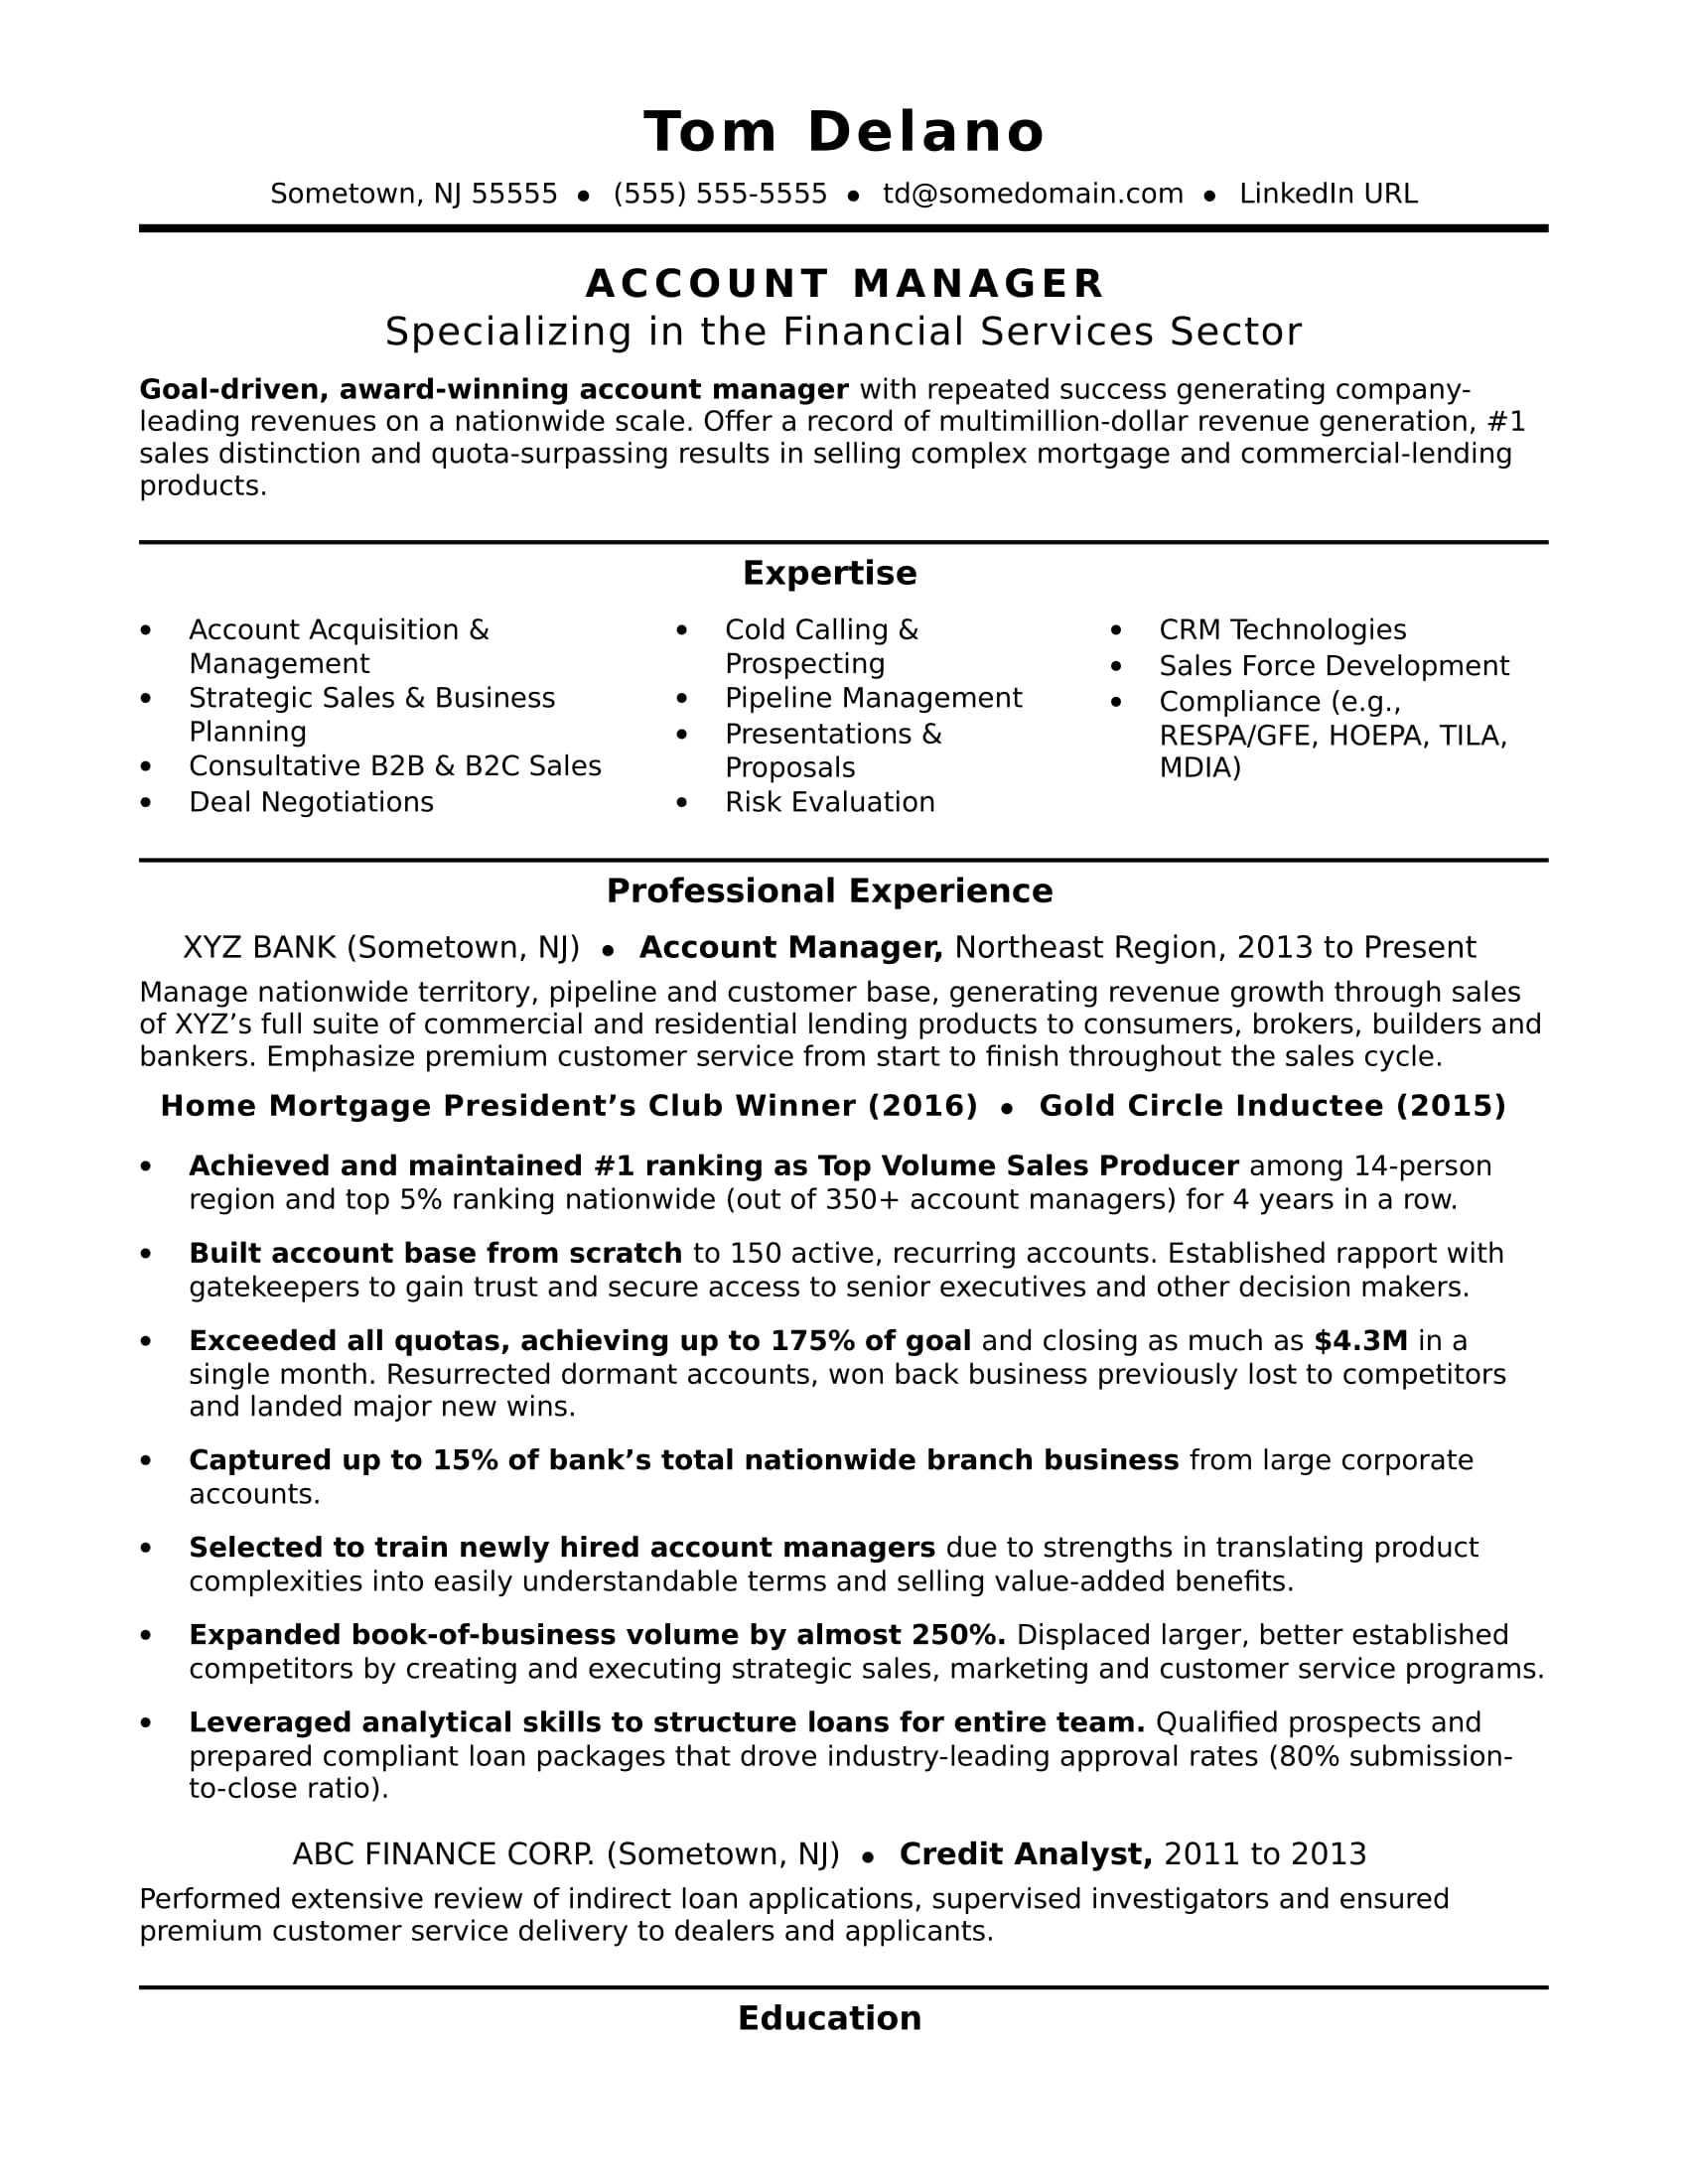 account manager resume sample monster media executive purchasing clerk ppc expert Resume Media Account Executive Resume